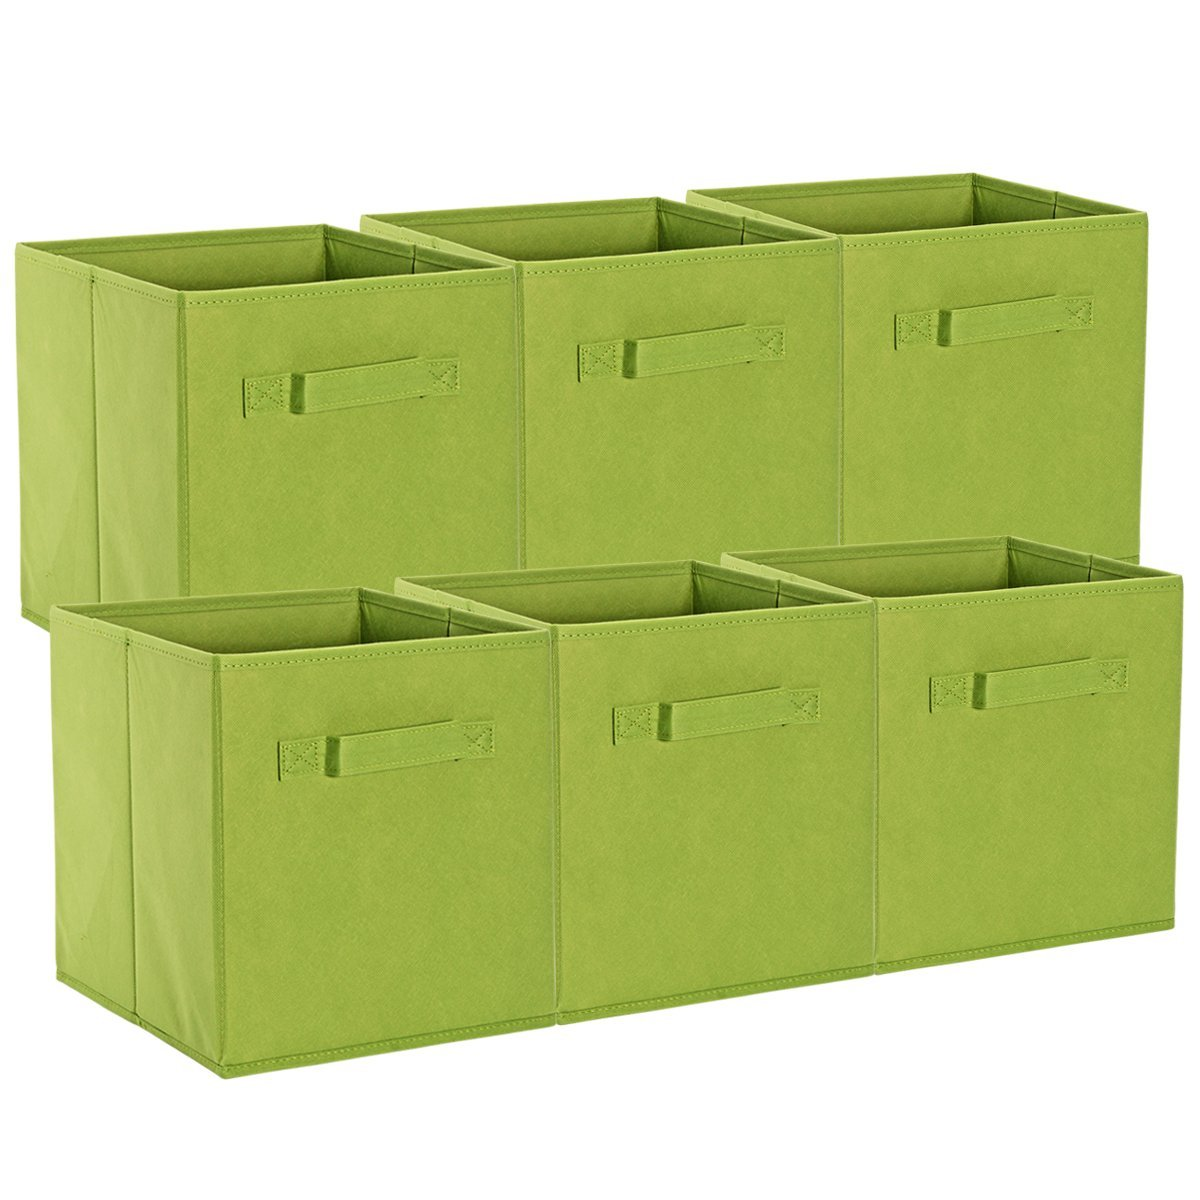 ON'H Foldable Cloth Storage Cubes Baskets Box Bins Organizers for Home Closet Kids Toy Storage Pack of 6, Green